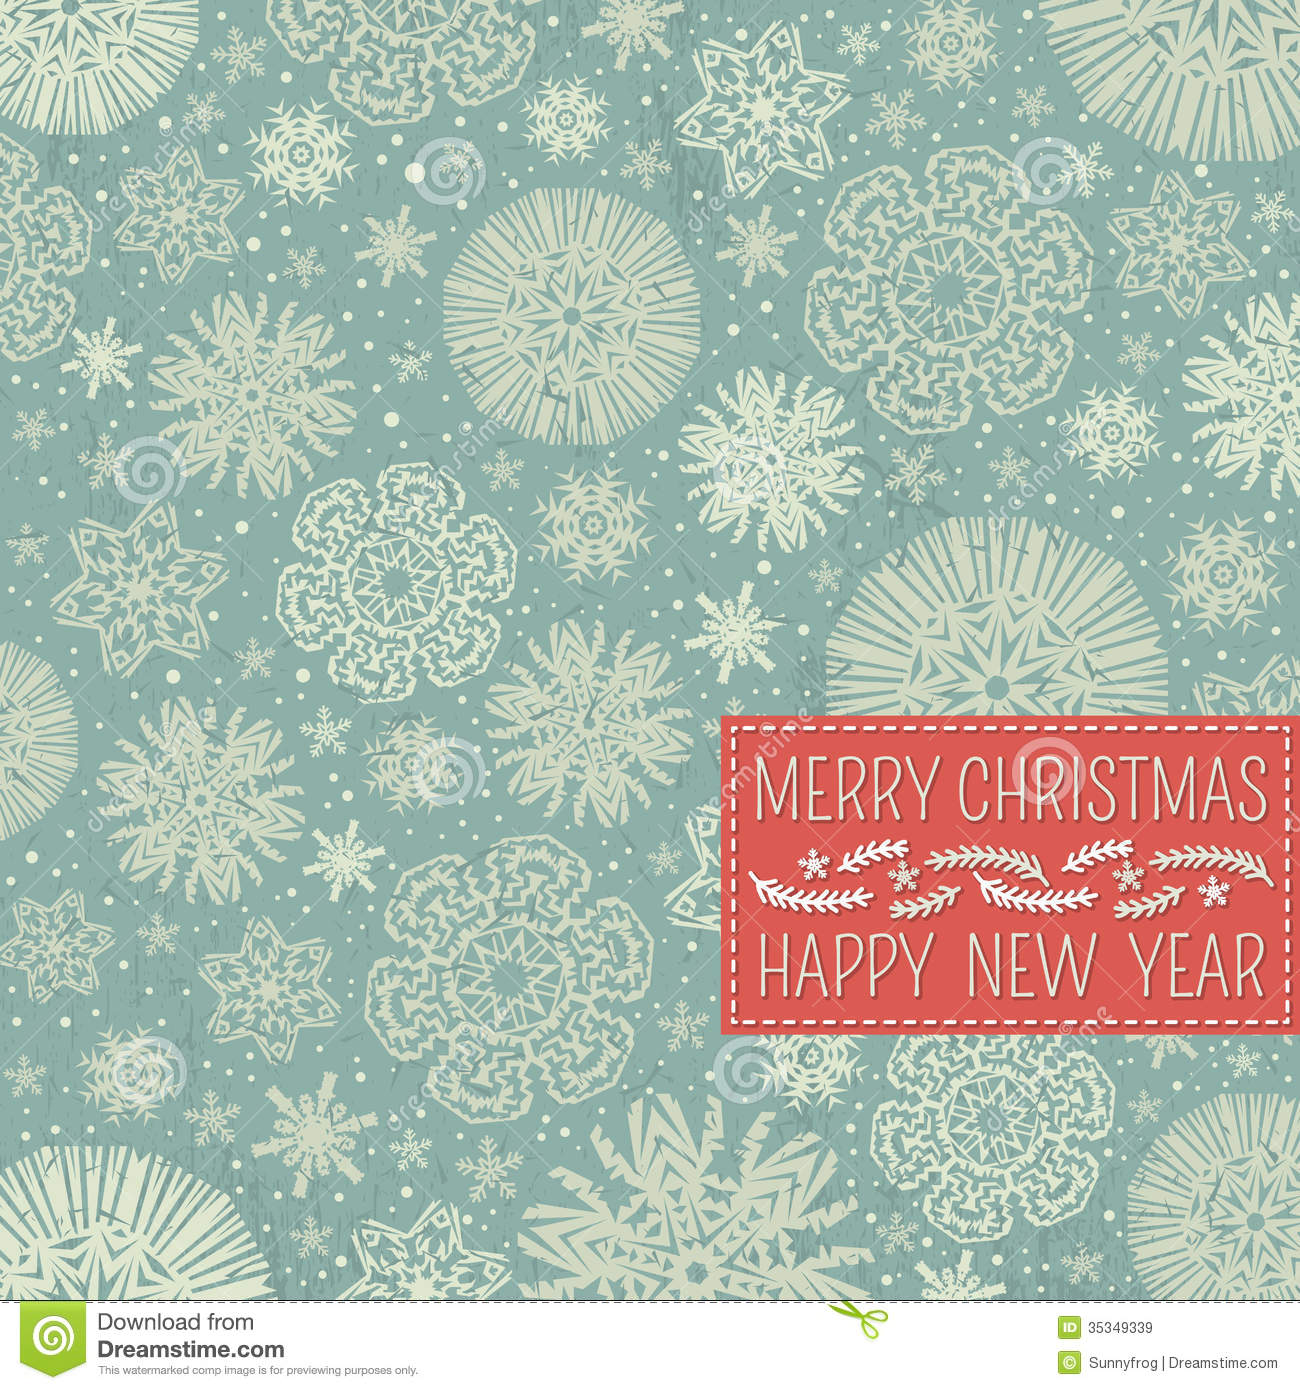 Retro Christmas Background With Snowflakes And Lab Royalty